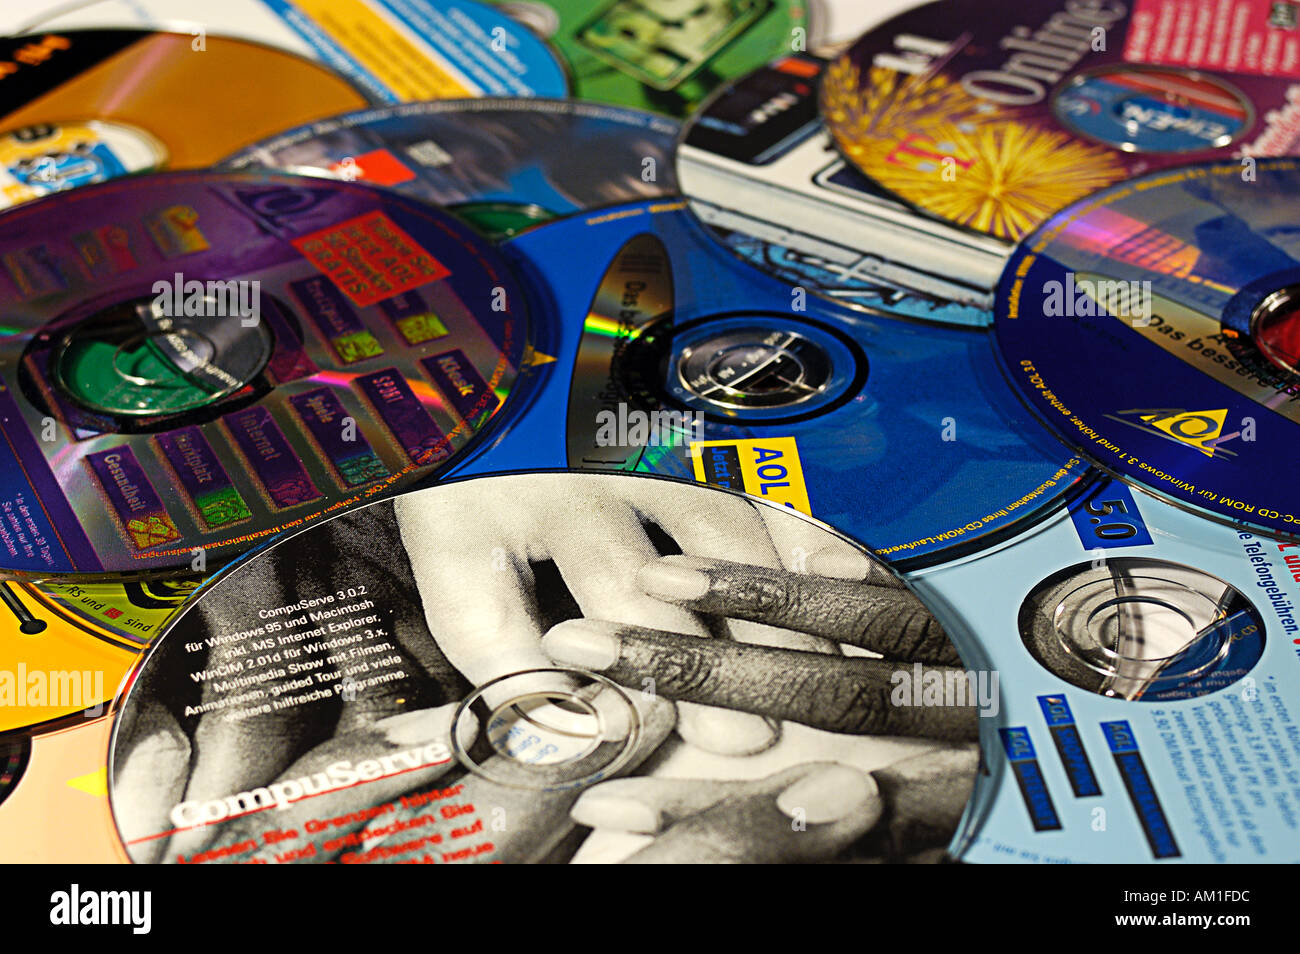 A Bulk of Advertising Cds - Stock Image